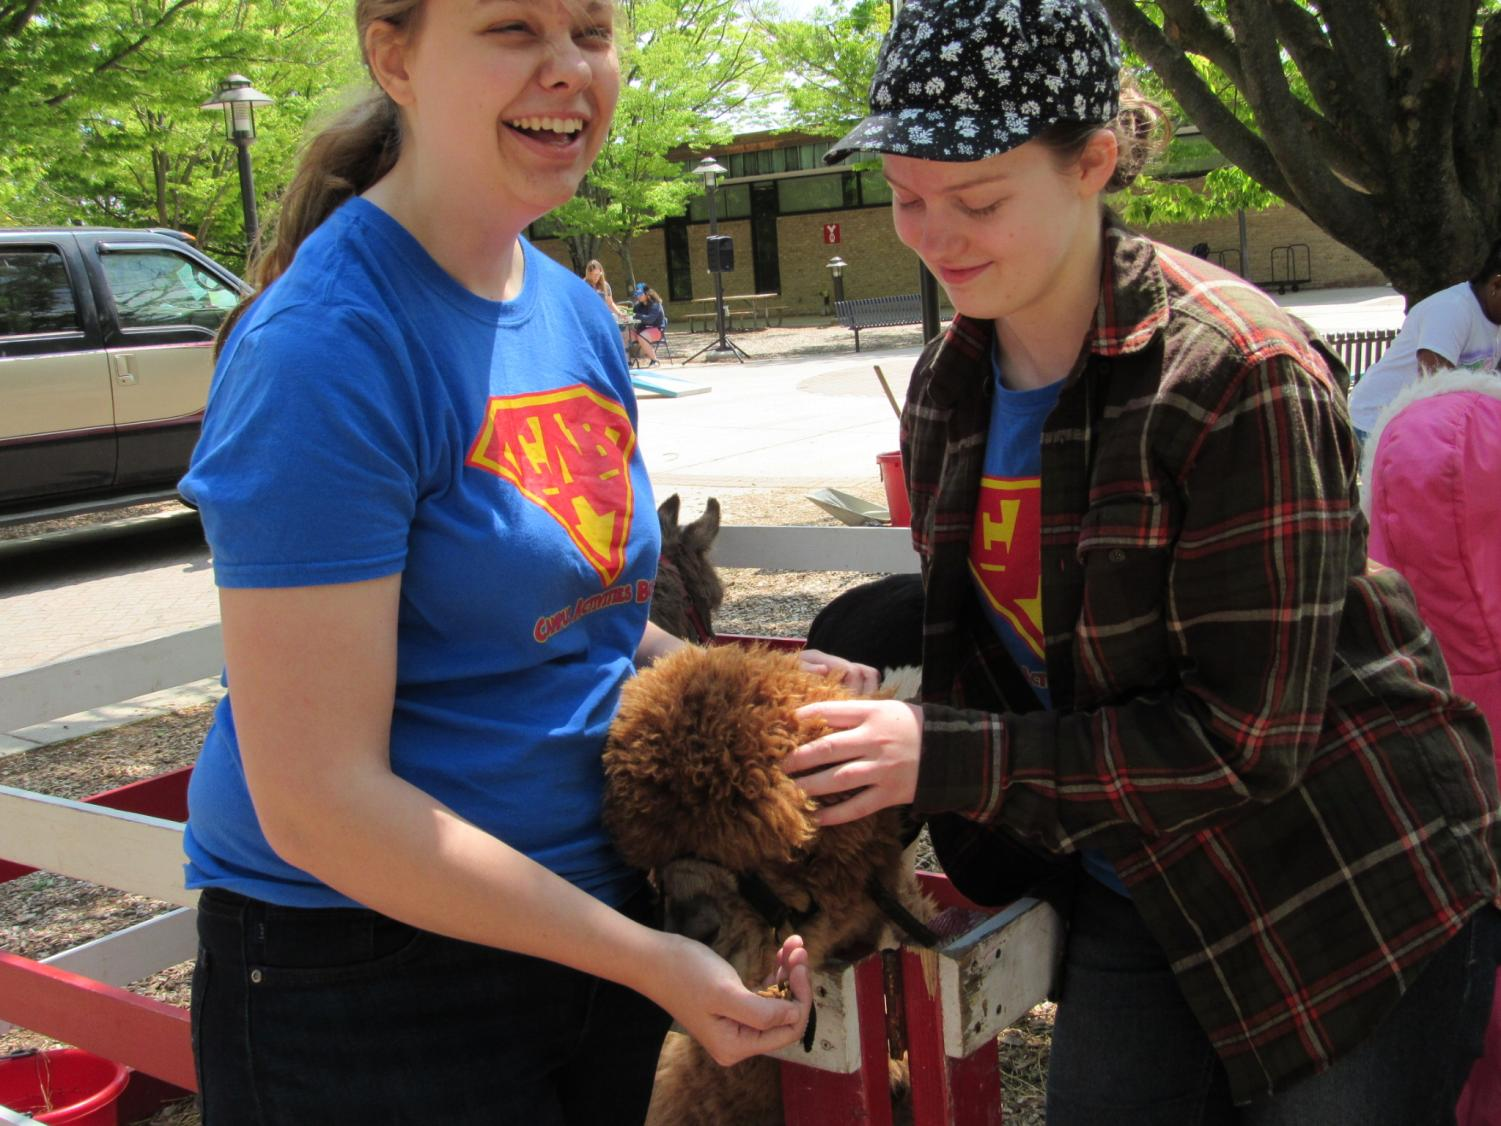 CAB executive board members Kristin Kohout and Catrina Murphy feed an alpaca at the Earth day petting zoo.